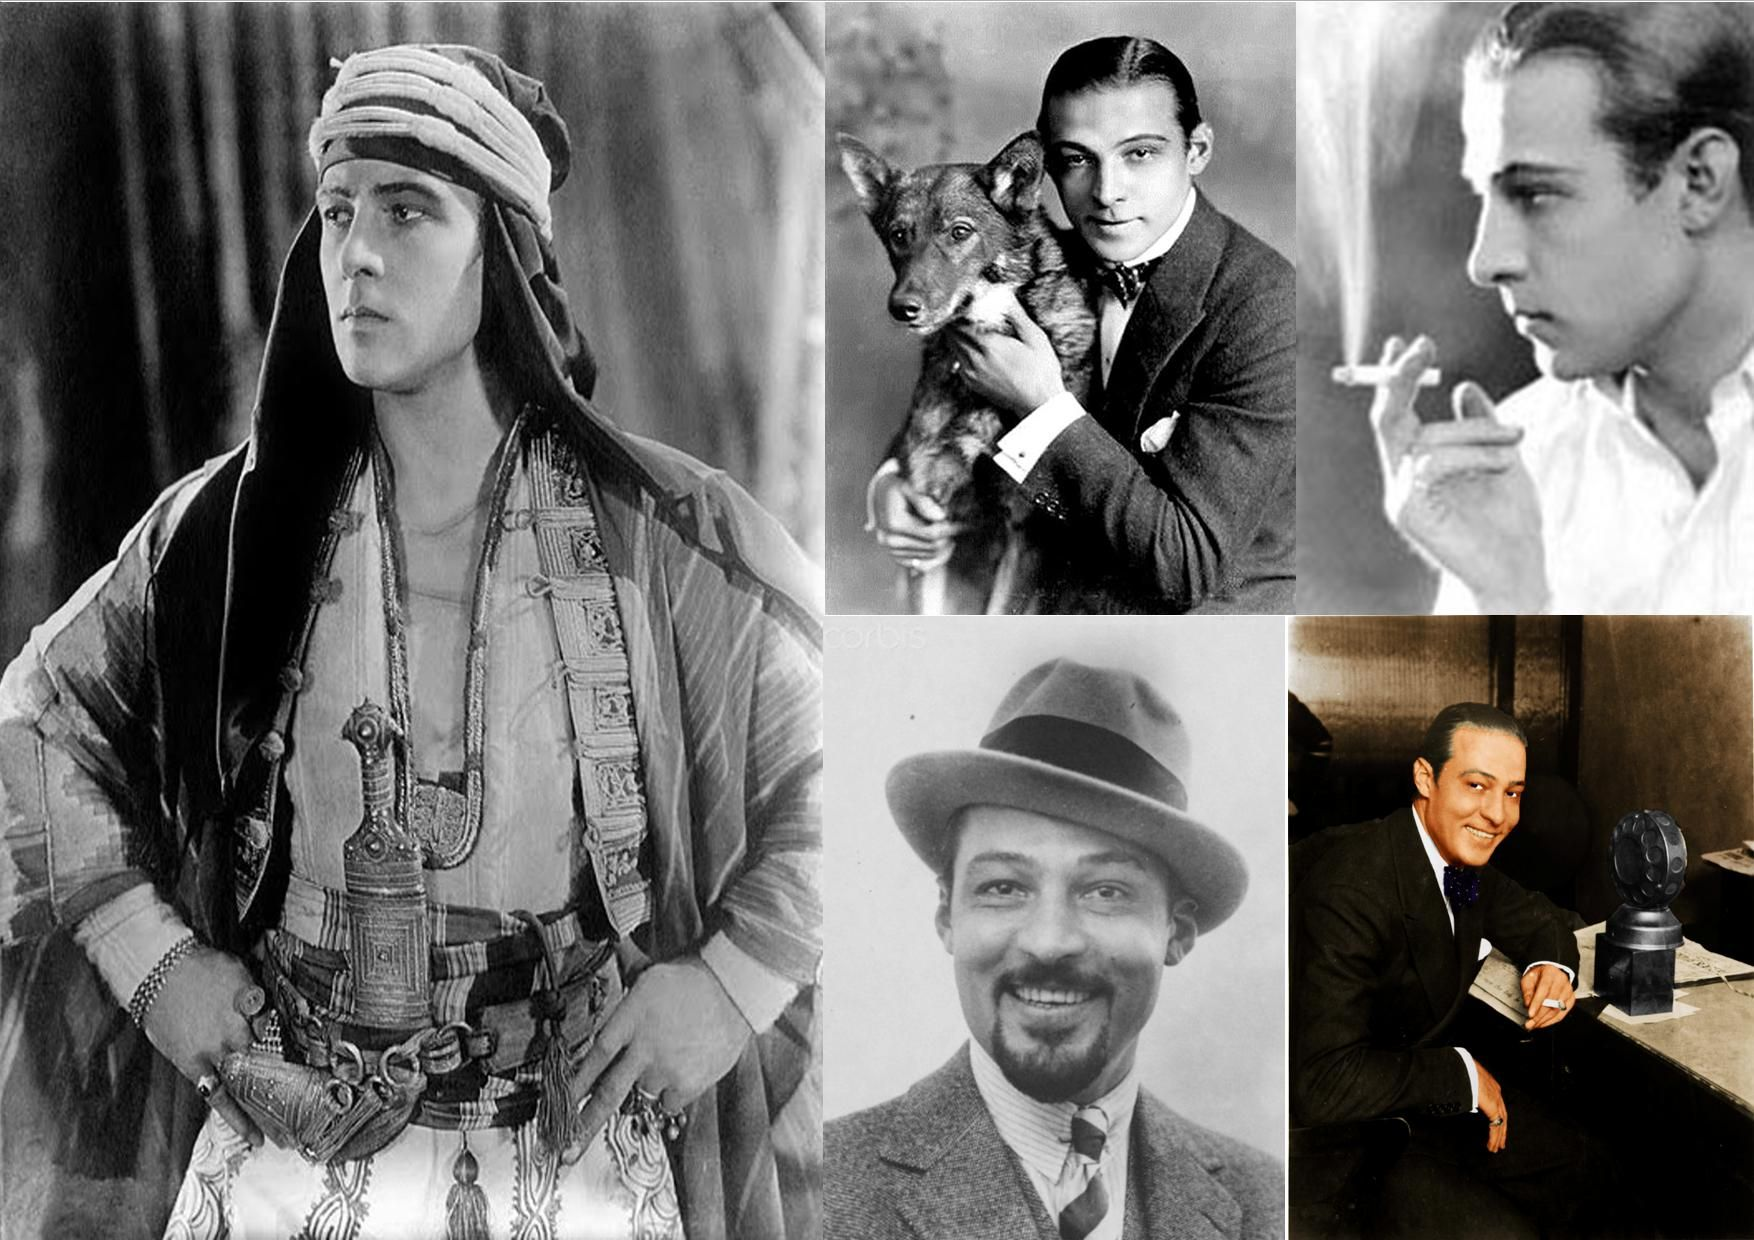 Rudolph Valentino ~ Born Rodolfo Alfonso Raffaello Pierre Filibert Guglielmi di Valentina d'Antonguolla, May 6, 1895 in Castellaneta, Apulia, Italy Died August 23, 1926 (aged 31) in New York City, New York, U.S. Italian-born American actor who starred in several well-known silent films.He had applied for American citizenship shortly before his death, which occurred at age 31, causing mass hysteria among his female fans and further propelling him into iconic status.